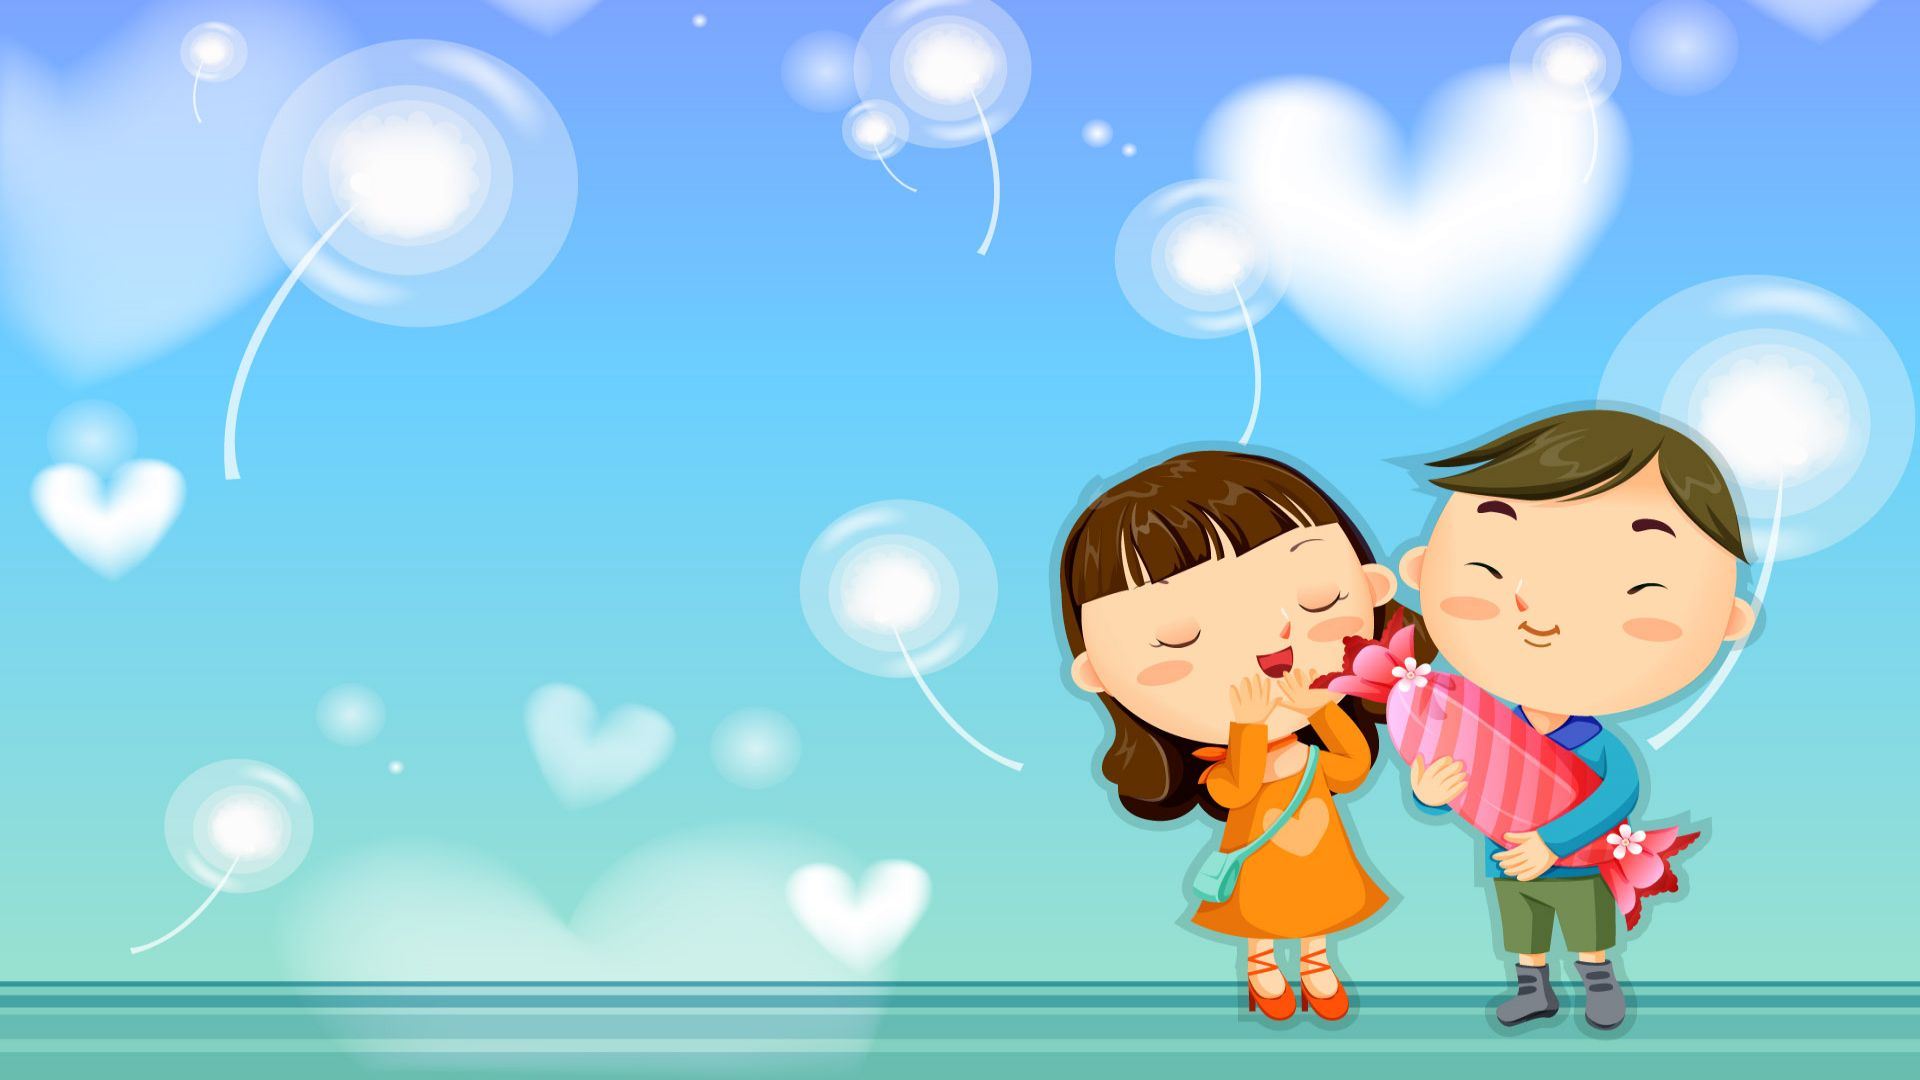 cartoon Love Full Hd Wallpaper : Karan portfolio: New cartoon characters